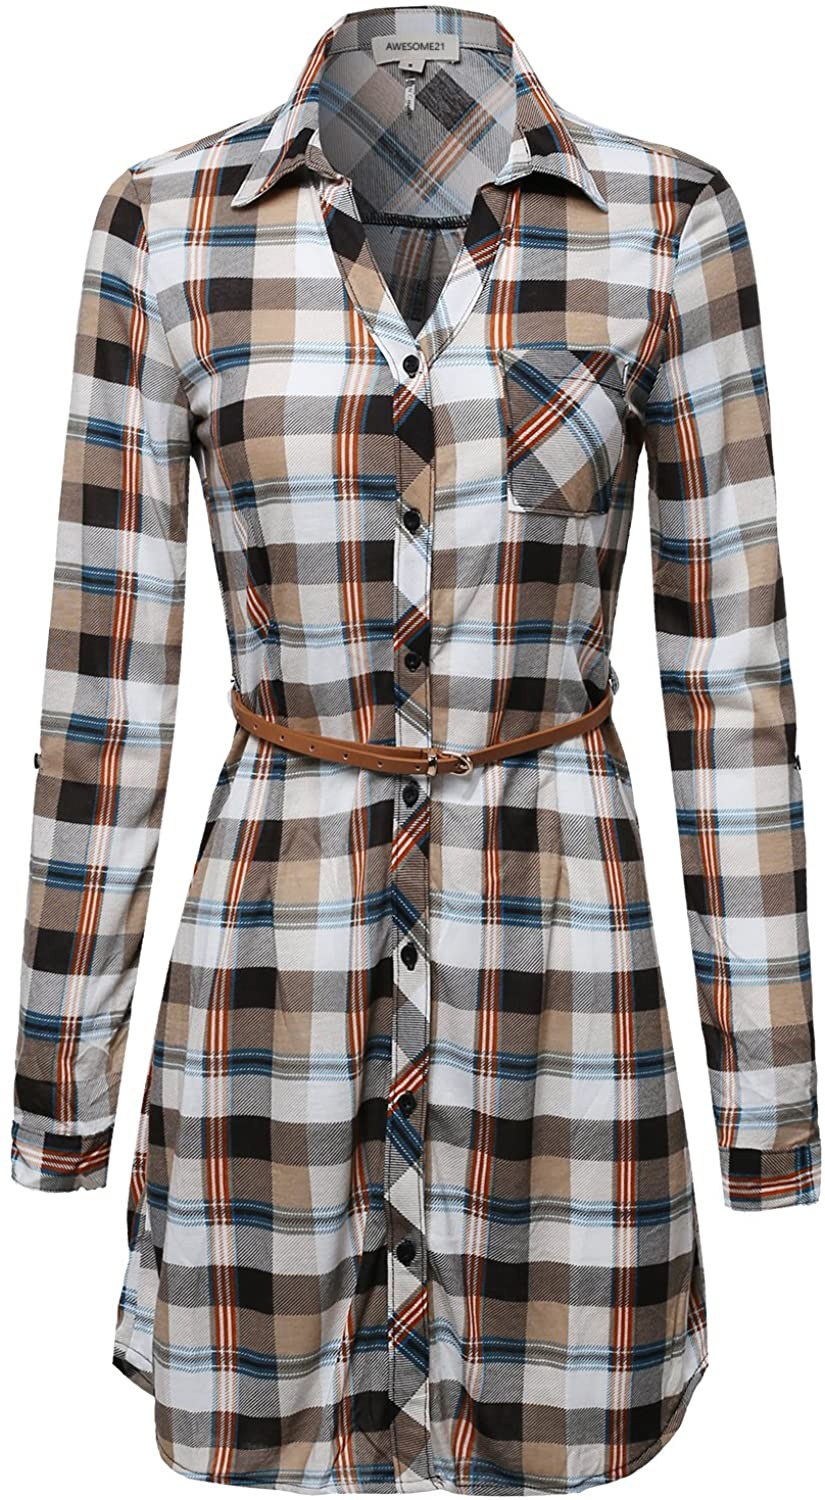 Awesome21 Womens Long Sleeve Button Down Plaid Dress w/Attached Belt